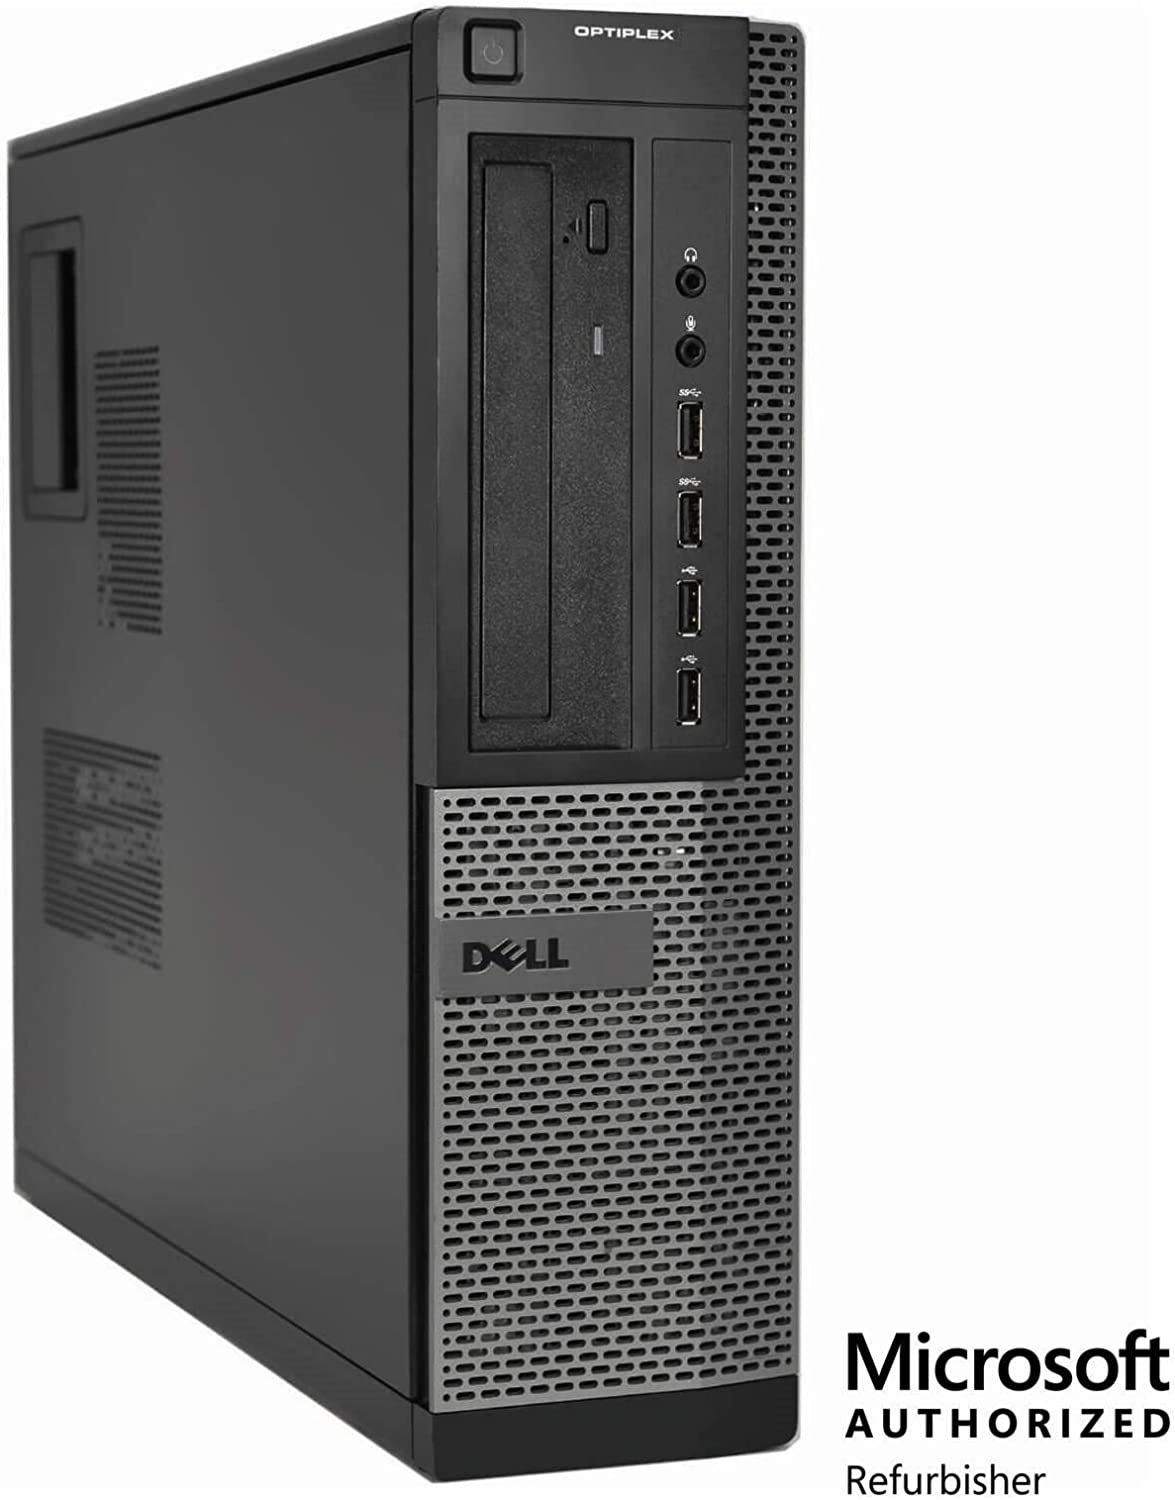 Dell Optiplex 9010 Desktop PC, 3.2 GHz Intel Core i5-3470, 16GB RAM, 2TB HDD, SSD, Monitor, Keyboard Mouse, WiFi, BT, DVD-RW, Windows 10 Renewed